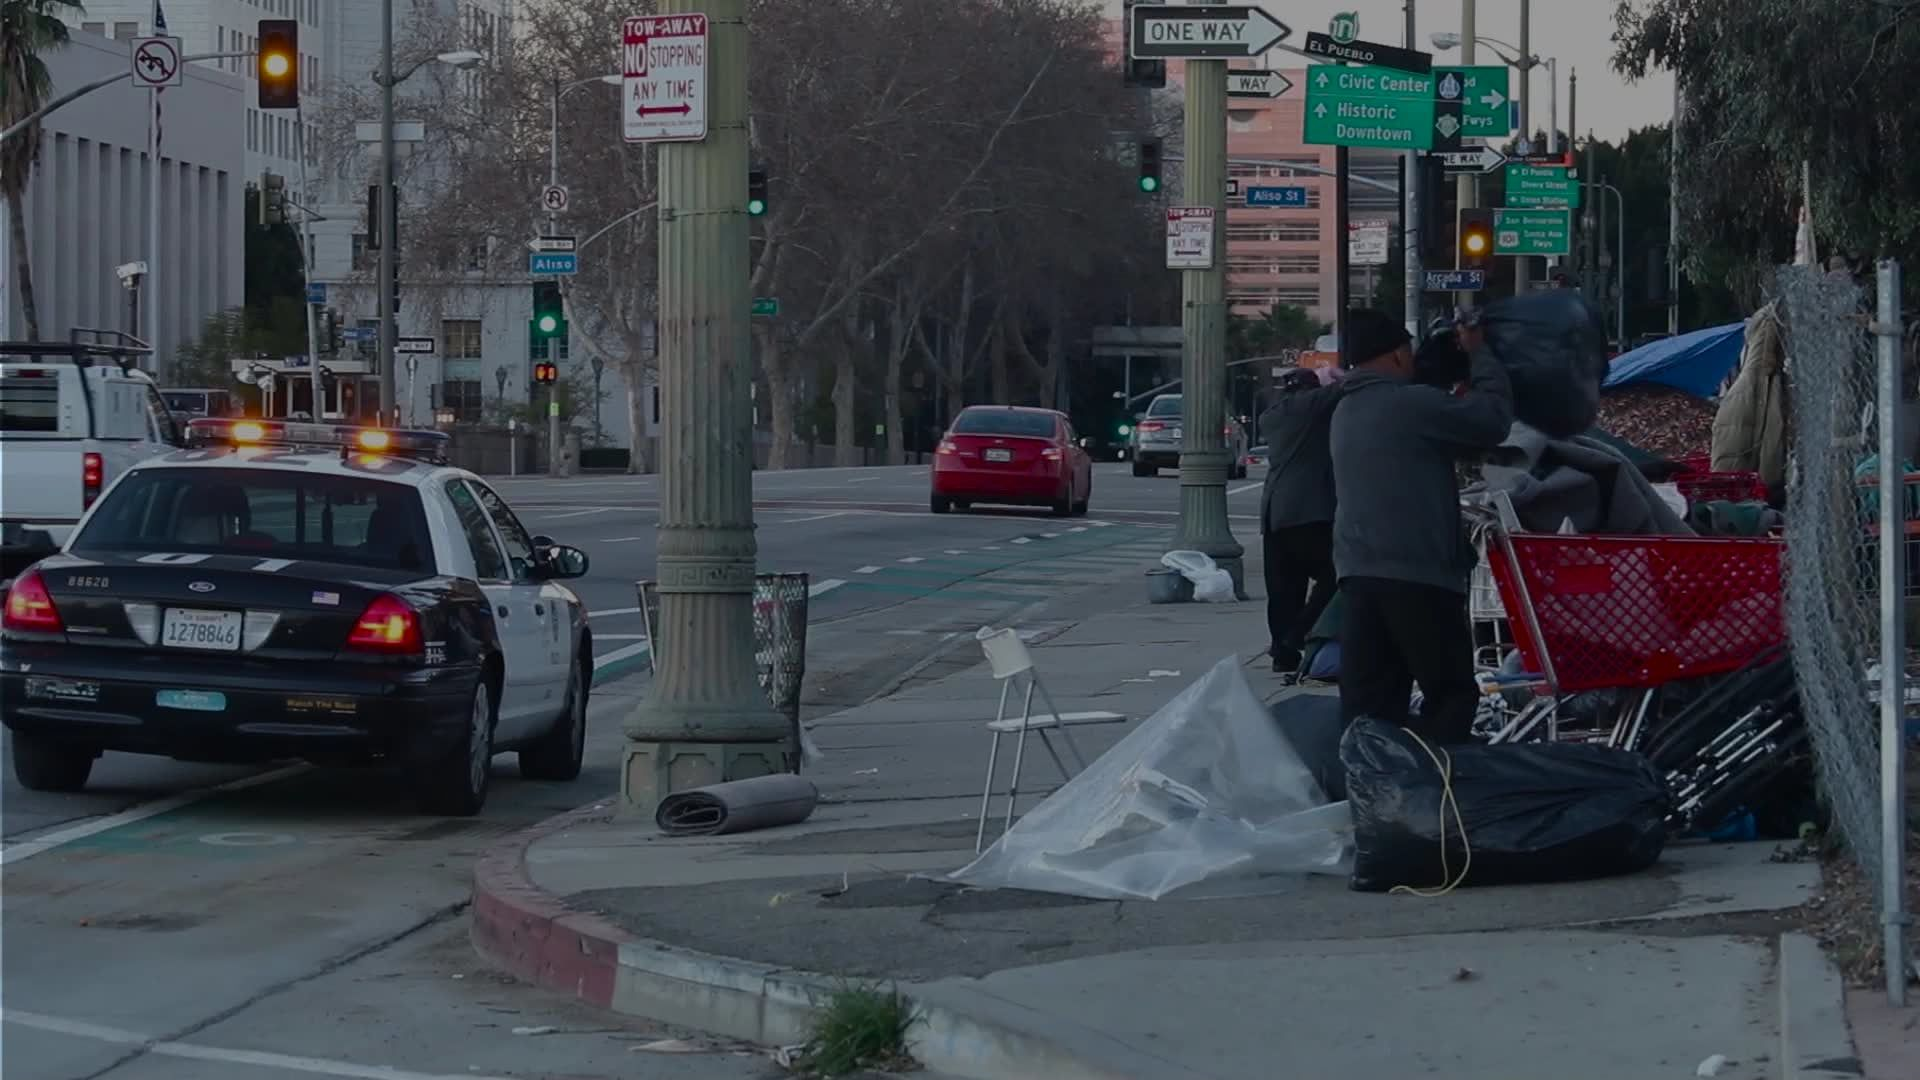 Homelessness In Los Angeles County Los Angeles County Los Angeles Homeless